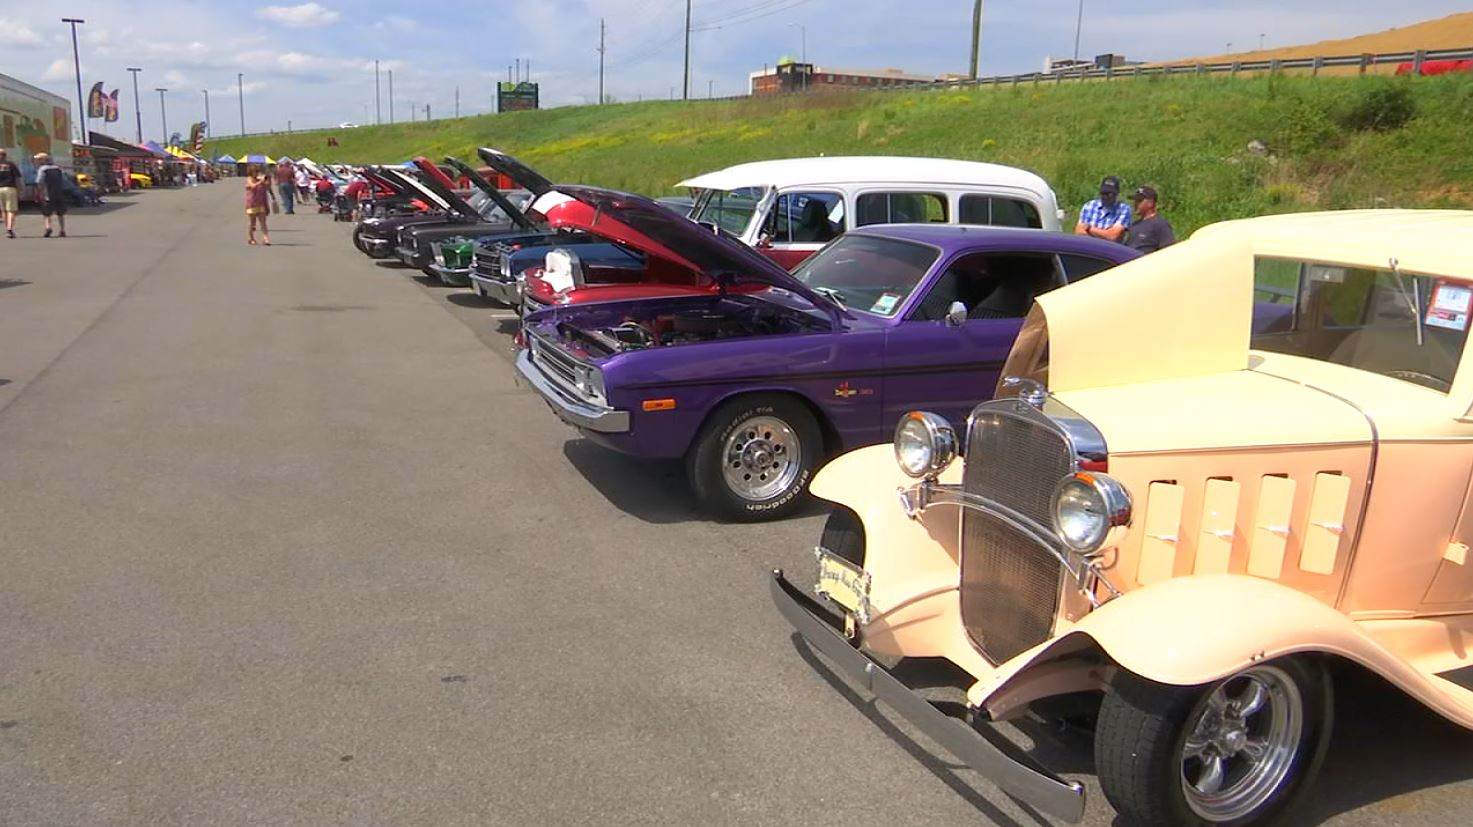 COVER PHOTO_Spring Rod Run to take over Pigeon Forge_0411_1555018051201.JPG.jpg